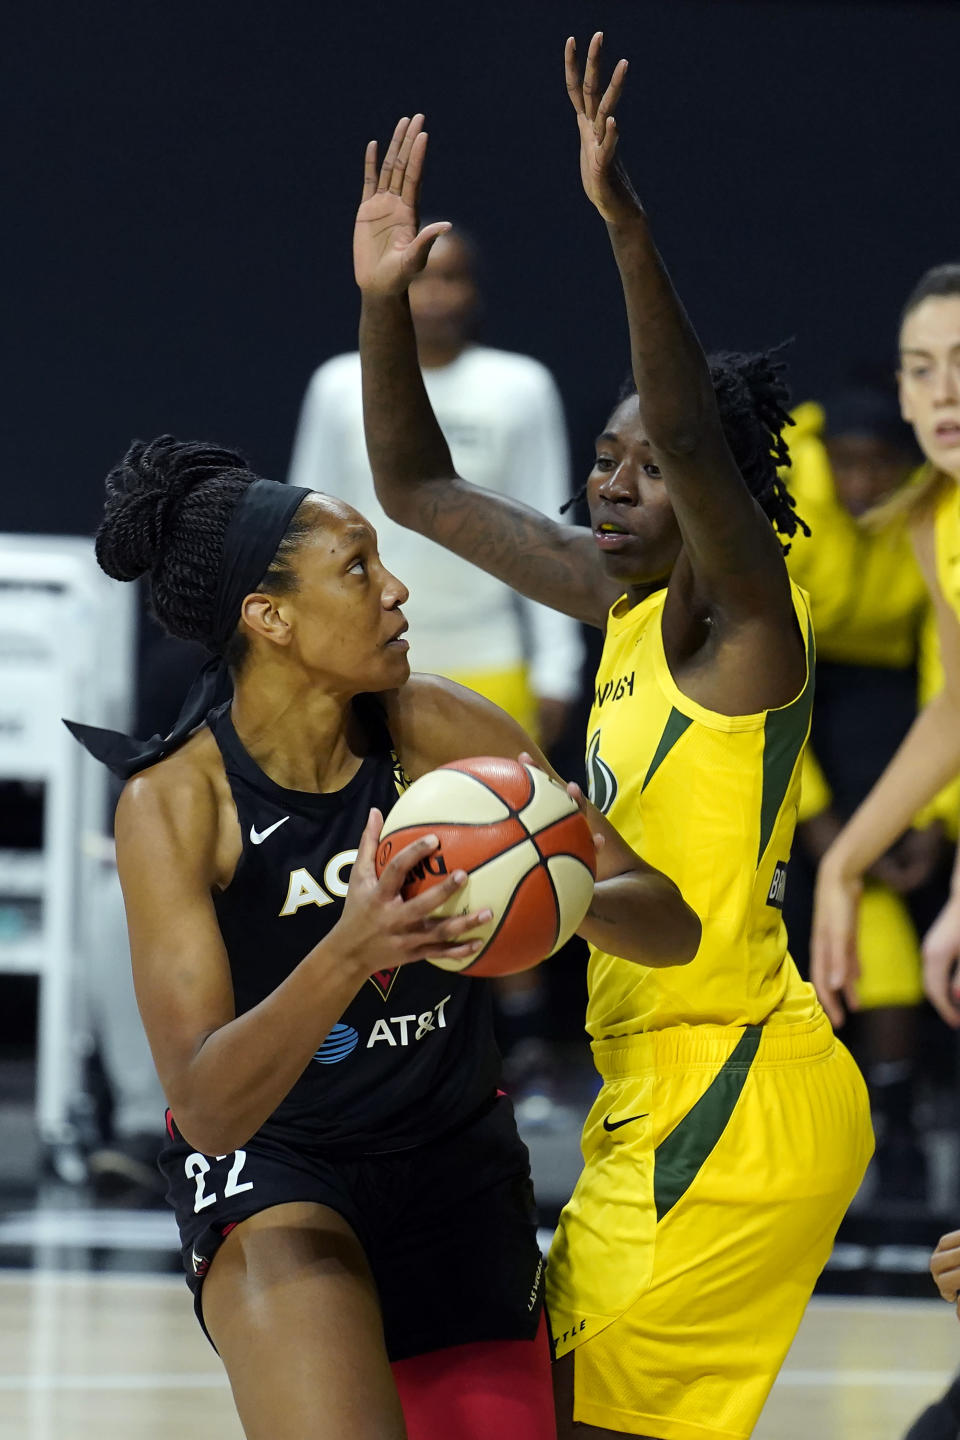 Las Vegas Aces center A'ja Wilson (22) goes up against Seattle Storm forward Natasha Howard (6) during the first half of Game 1 of basketball's WNBA Finals Friday, Oct. 2, 2020, in Bradenton, Fla. (AP Photo/Chris O'Meara)